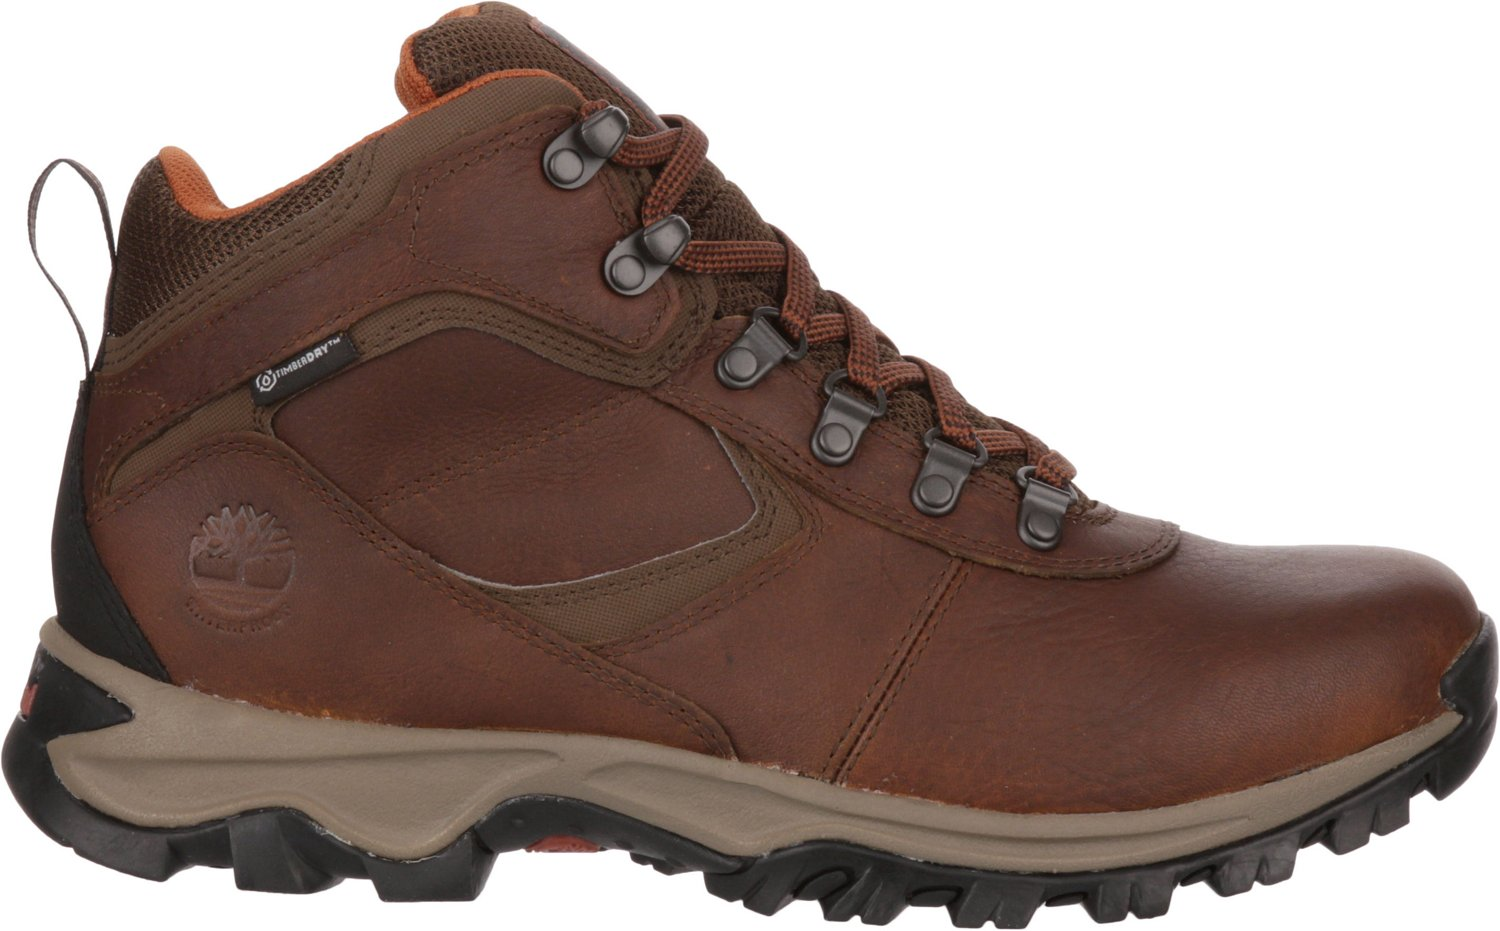 0f956708958 Timberland Men s Mt. Maddsen Waterproof Mid Hiking Boots